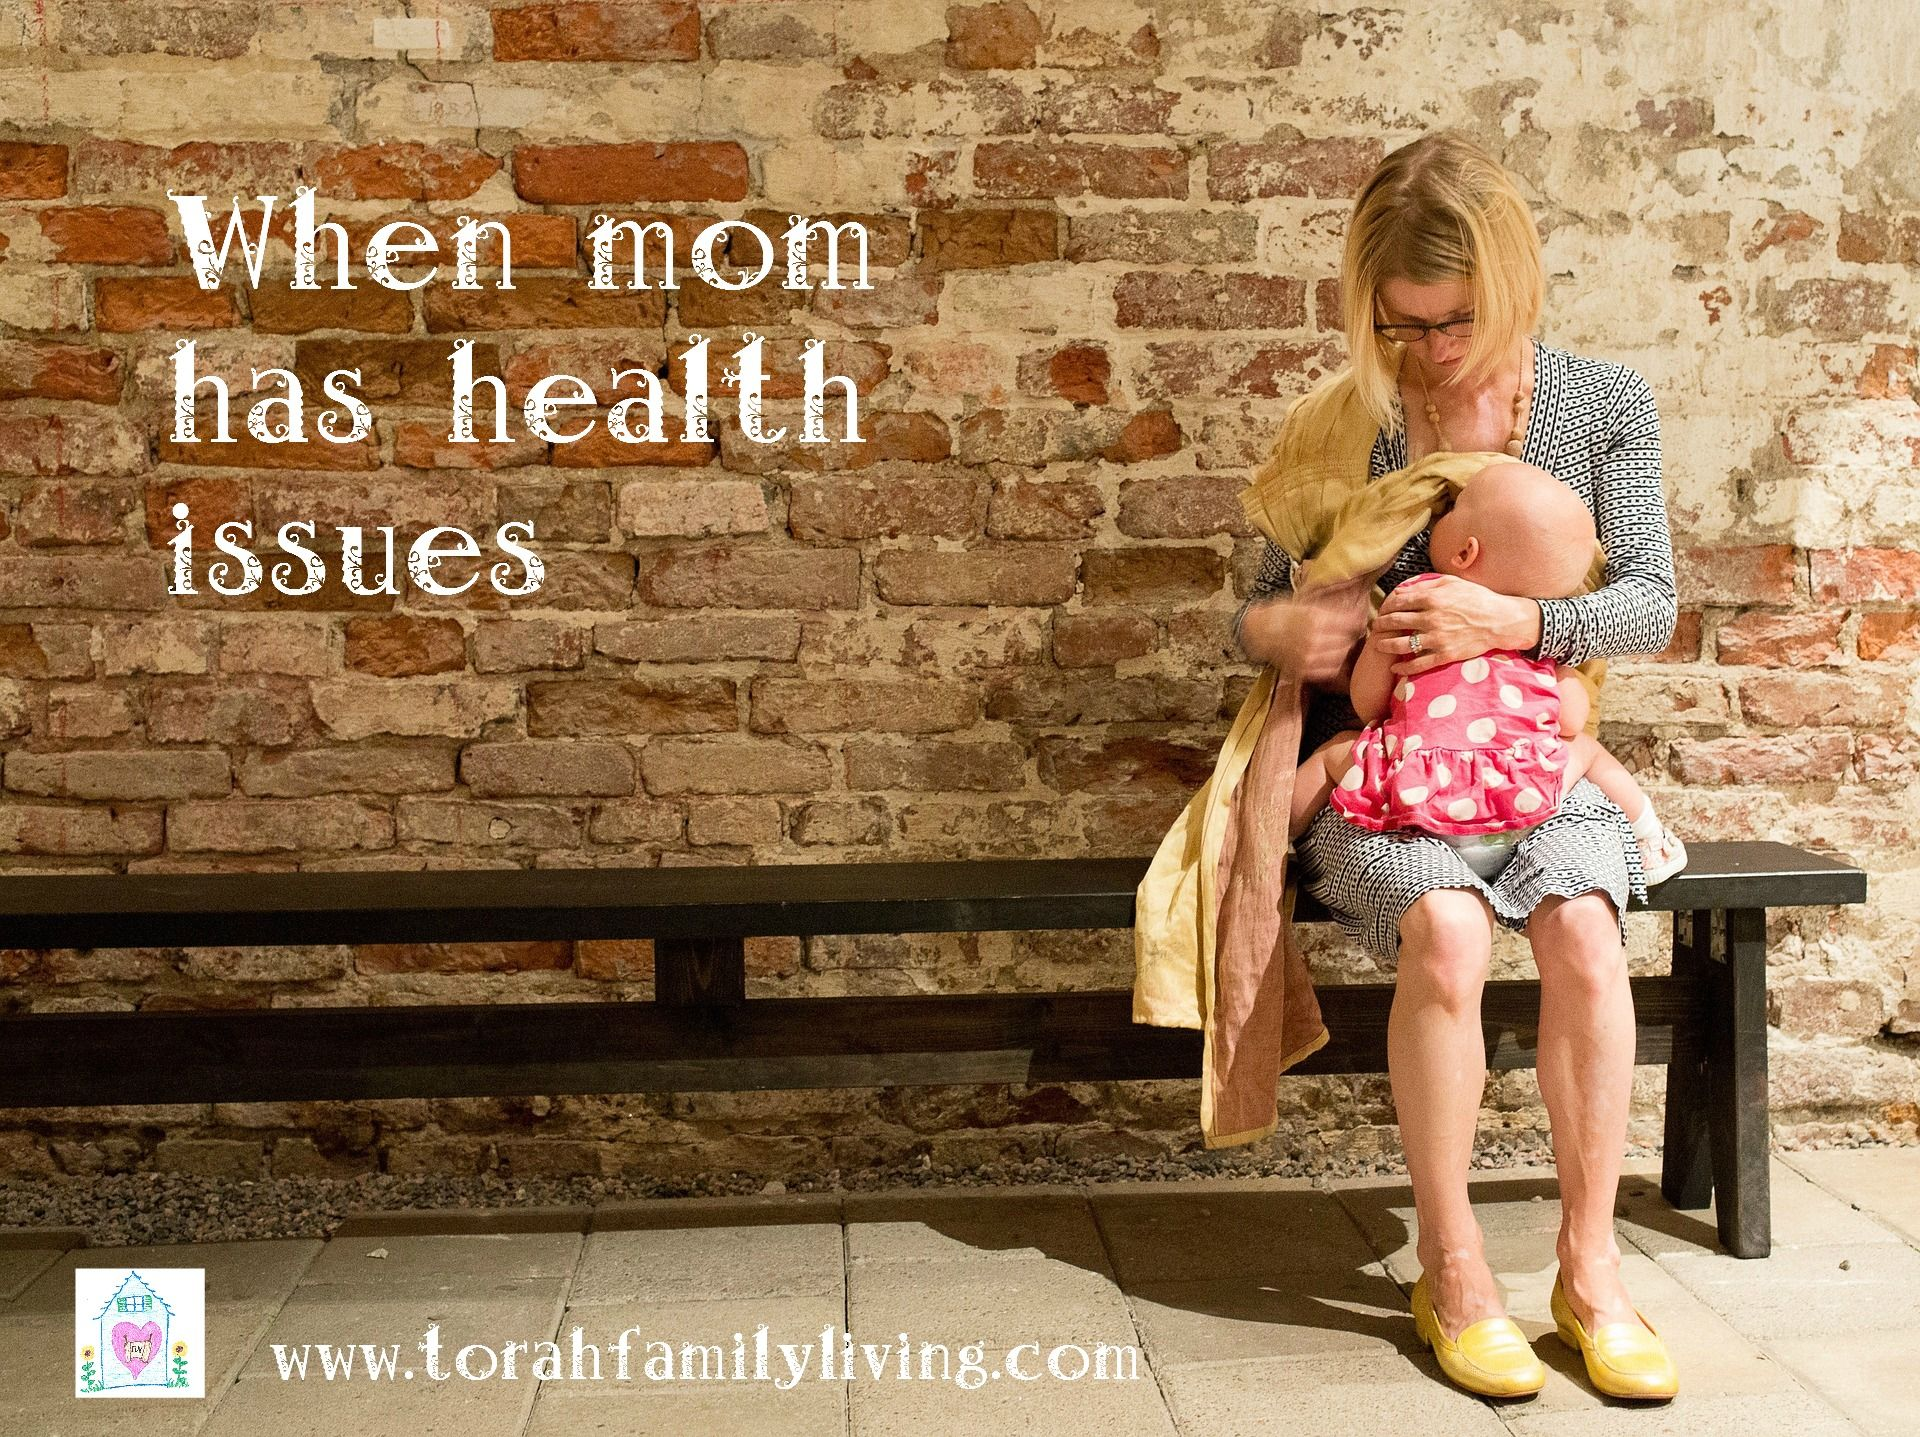 Today I want to share with you one of my hidden struggles and how I have learned to rise above it. I'm a mom with health issues.